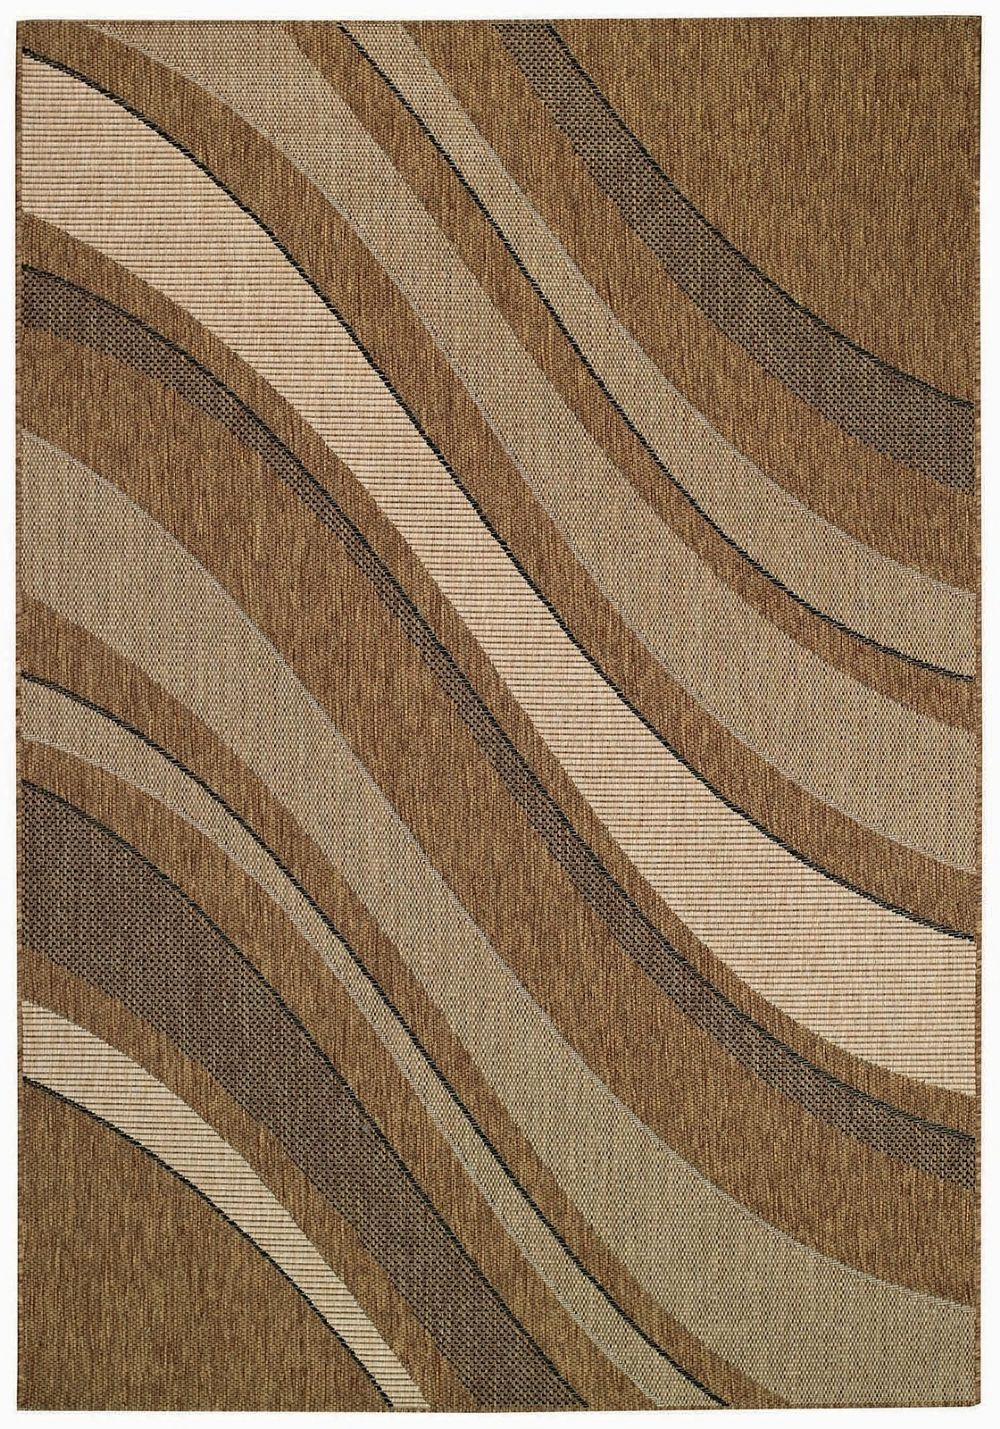 capel springs-tides contemporary area rug collection